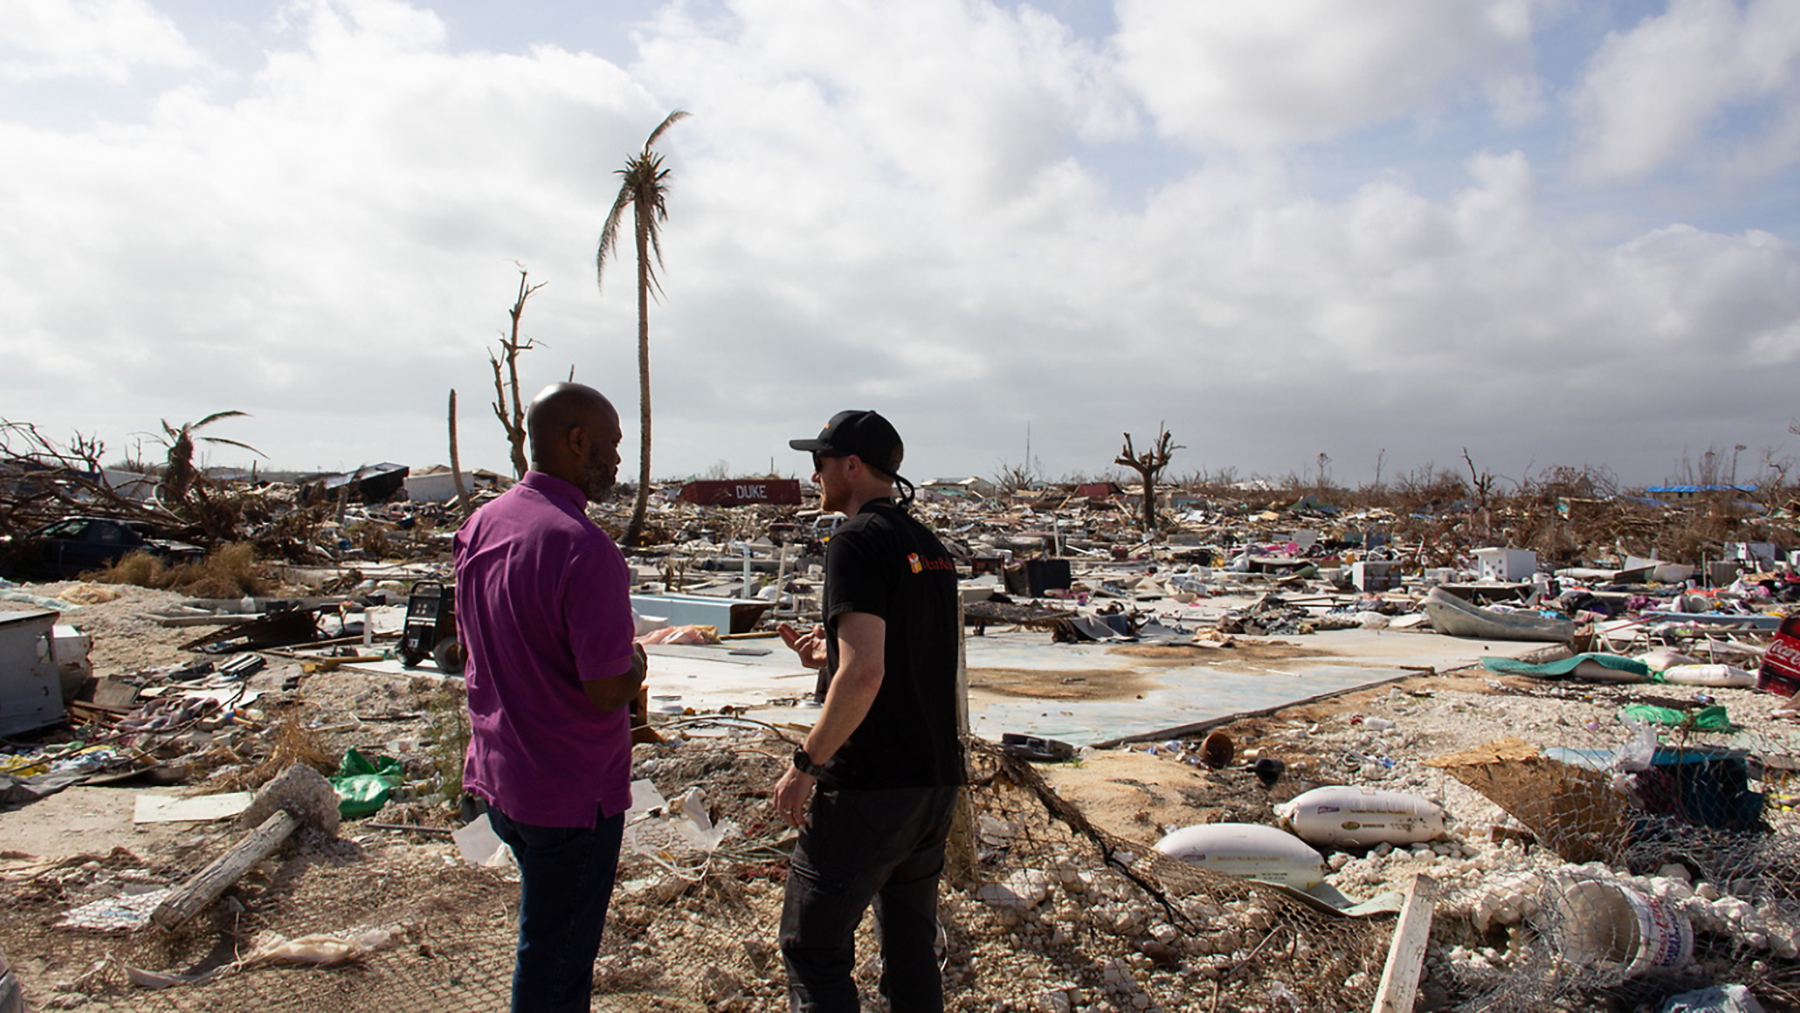 Direct Relief's Gordon Wilcock meets with a doctor in the Bahamas after Hurricane Dorian hit the islands as a Category 5 hurricane in August.